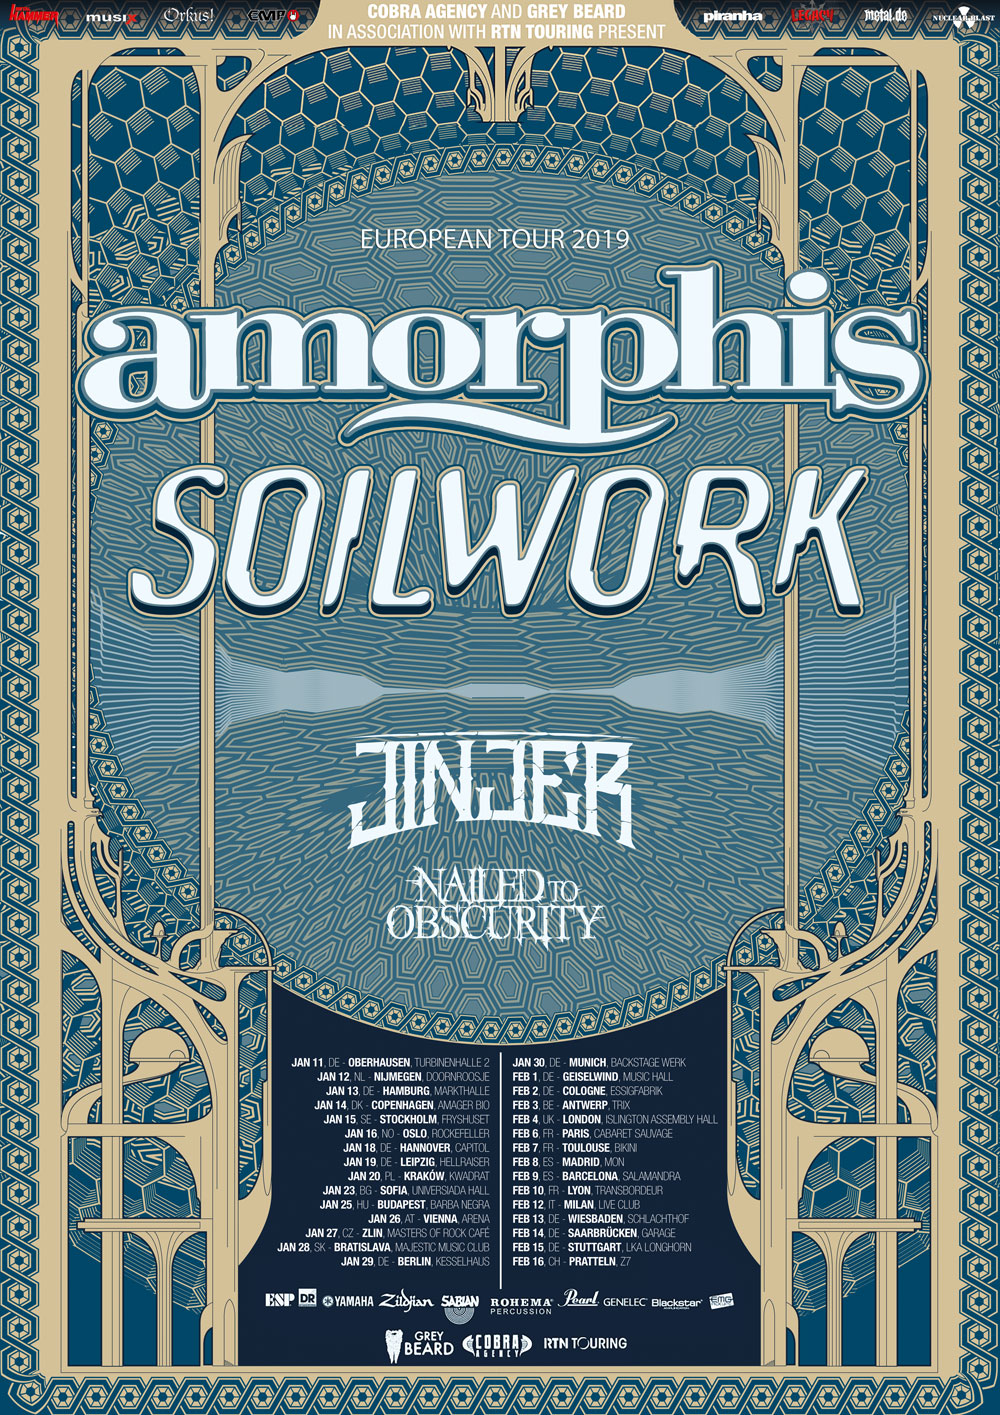 LEGACY präsentiert: AMORPHIS, SOULWORK, JINJER, NAILED TO OBSCURITY live 2019!